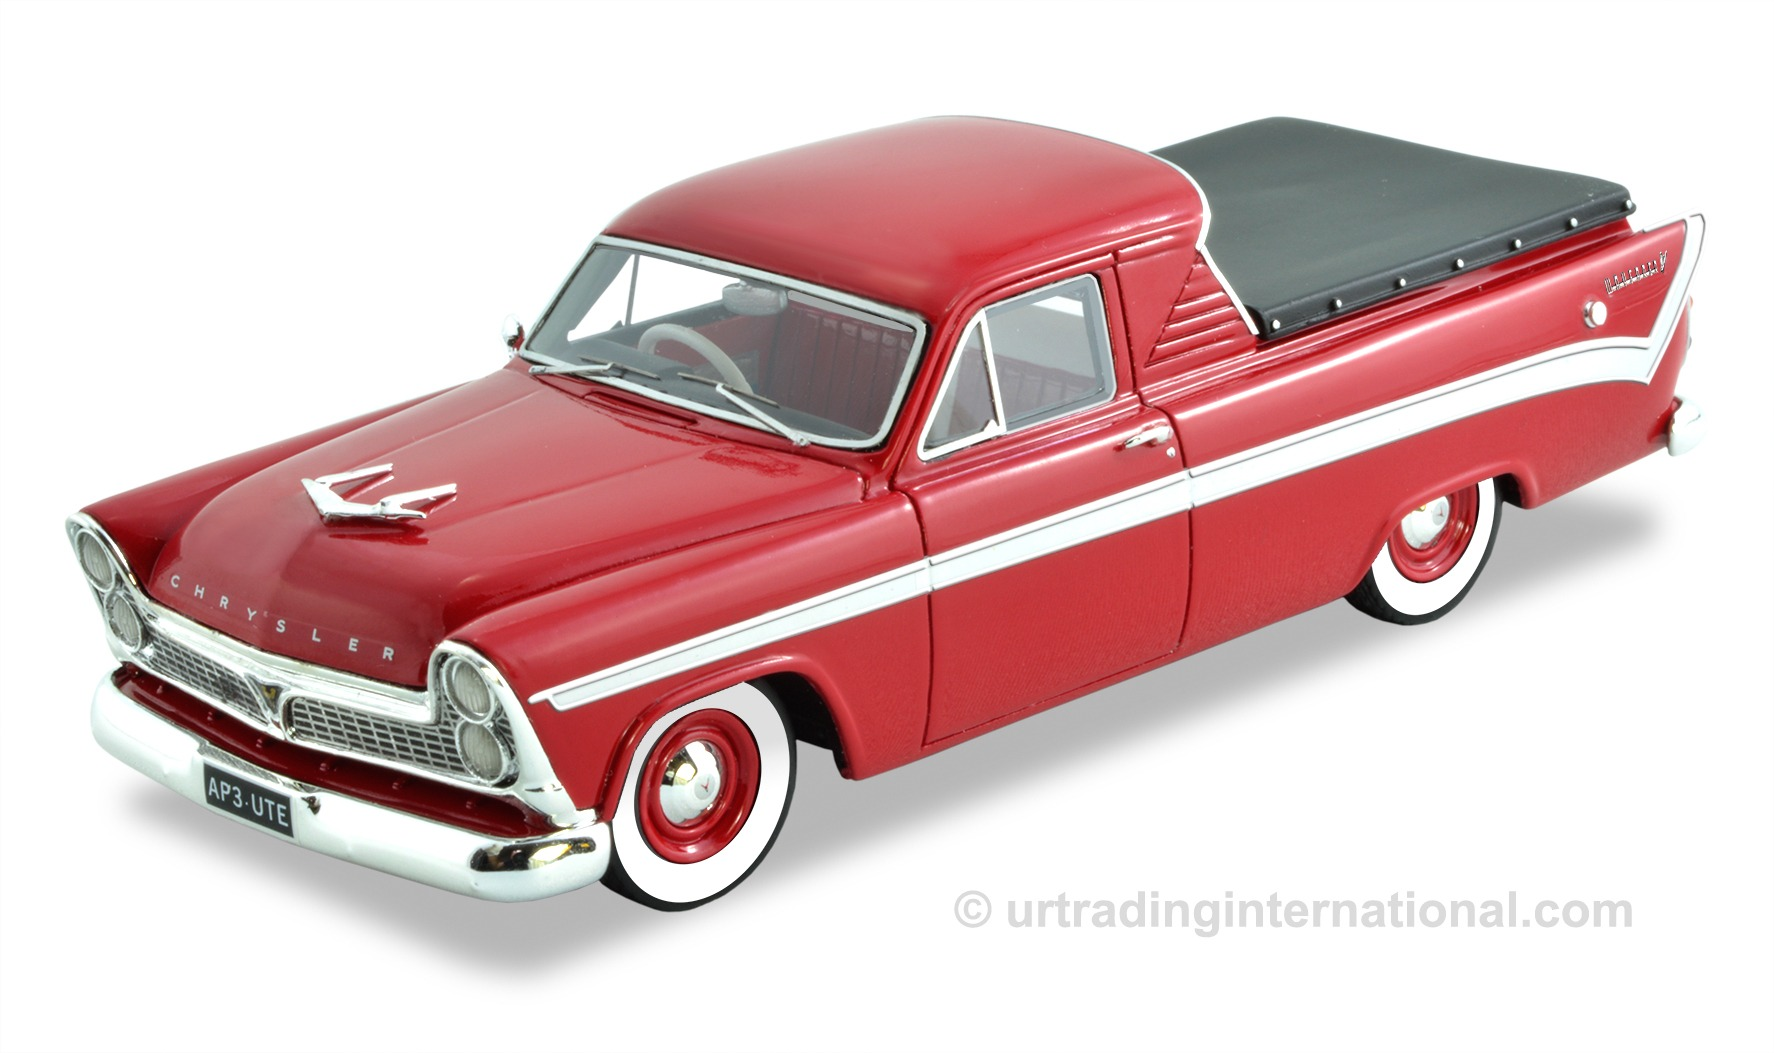 Chrysler Royal AP3 Wayfarer Ute – Red / White